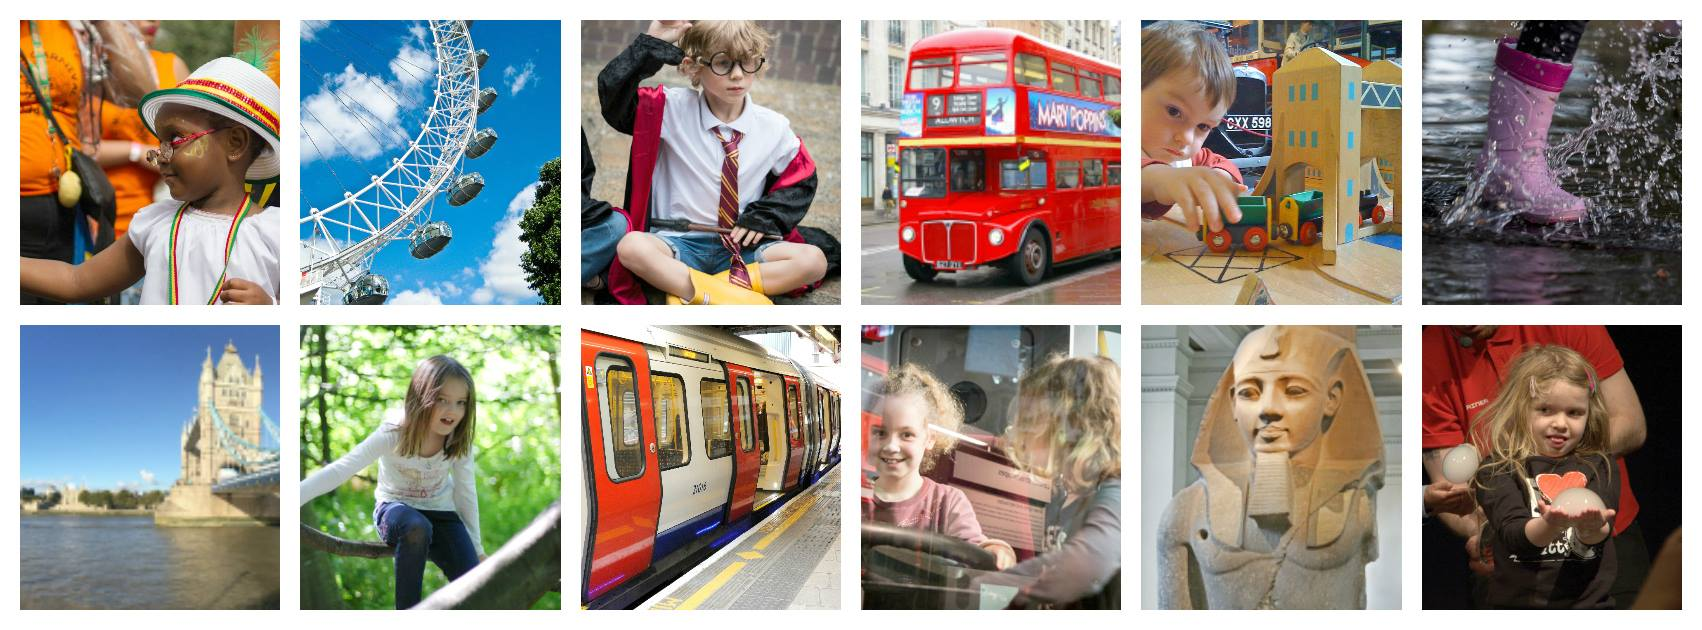 Fun family days out and cool stuff to do in and around London that kids will love